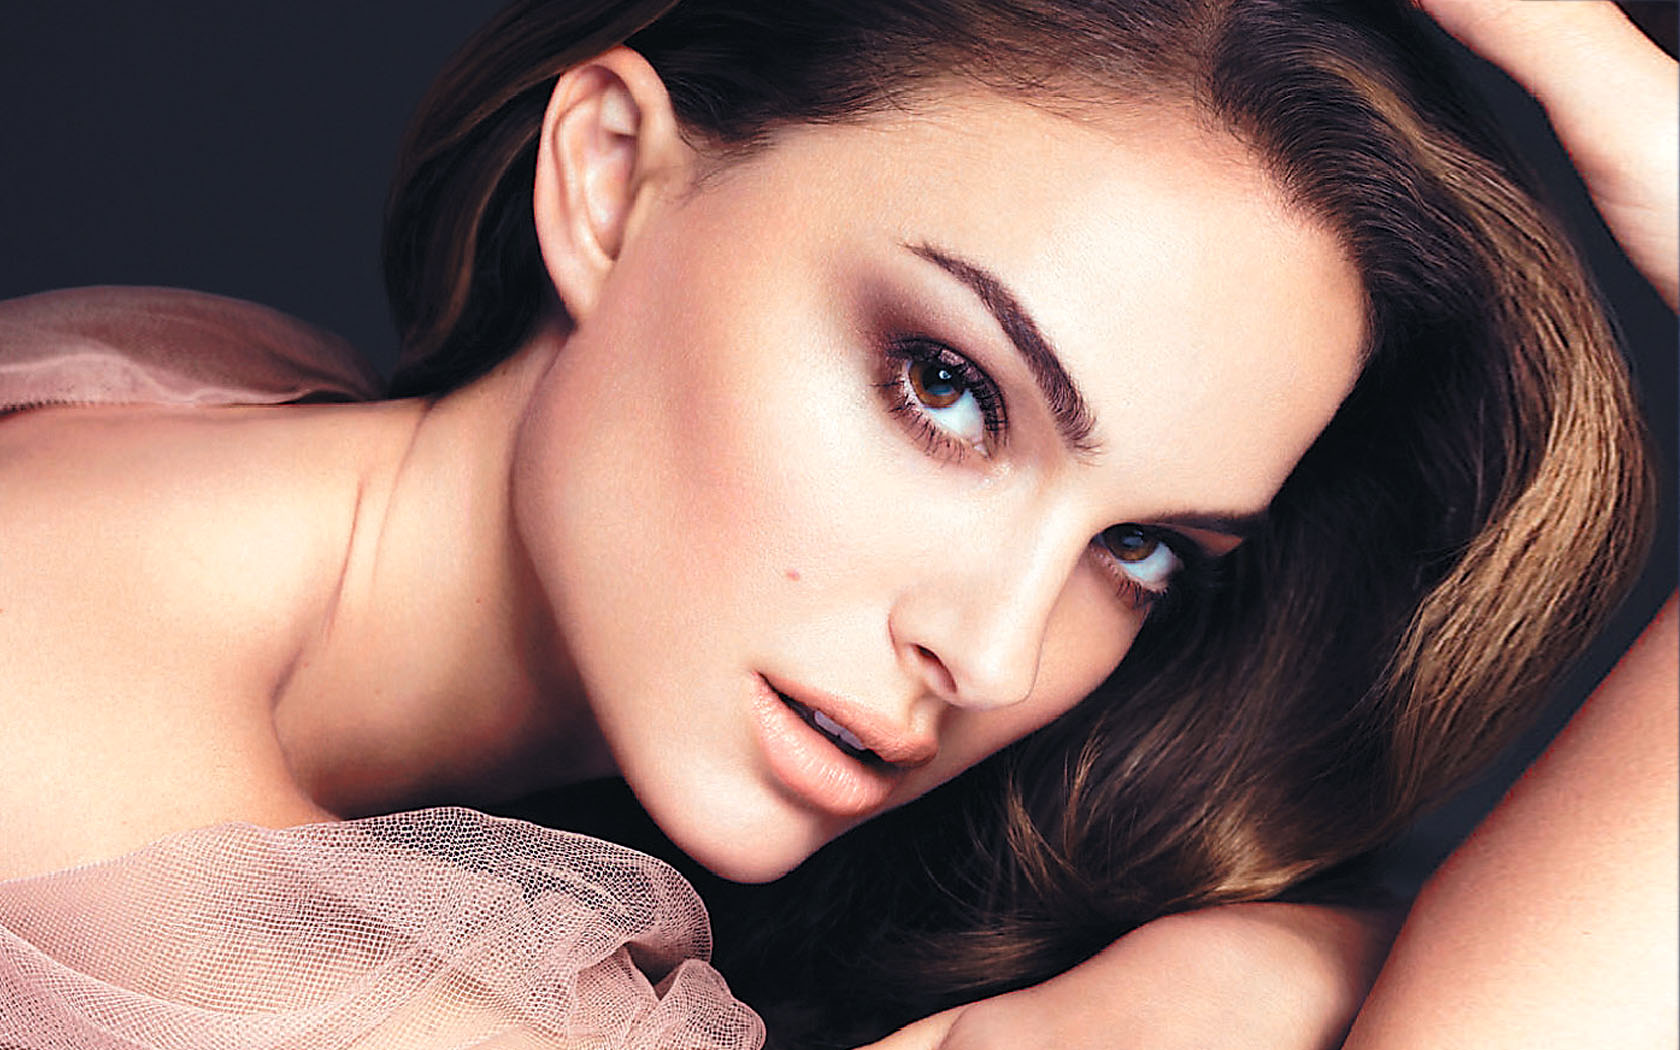 Dior-Make-Up-natalie-portman-28088000-16